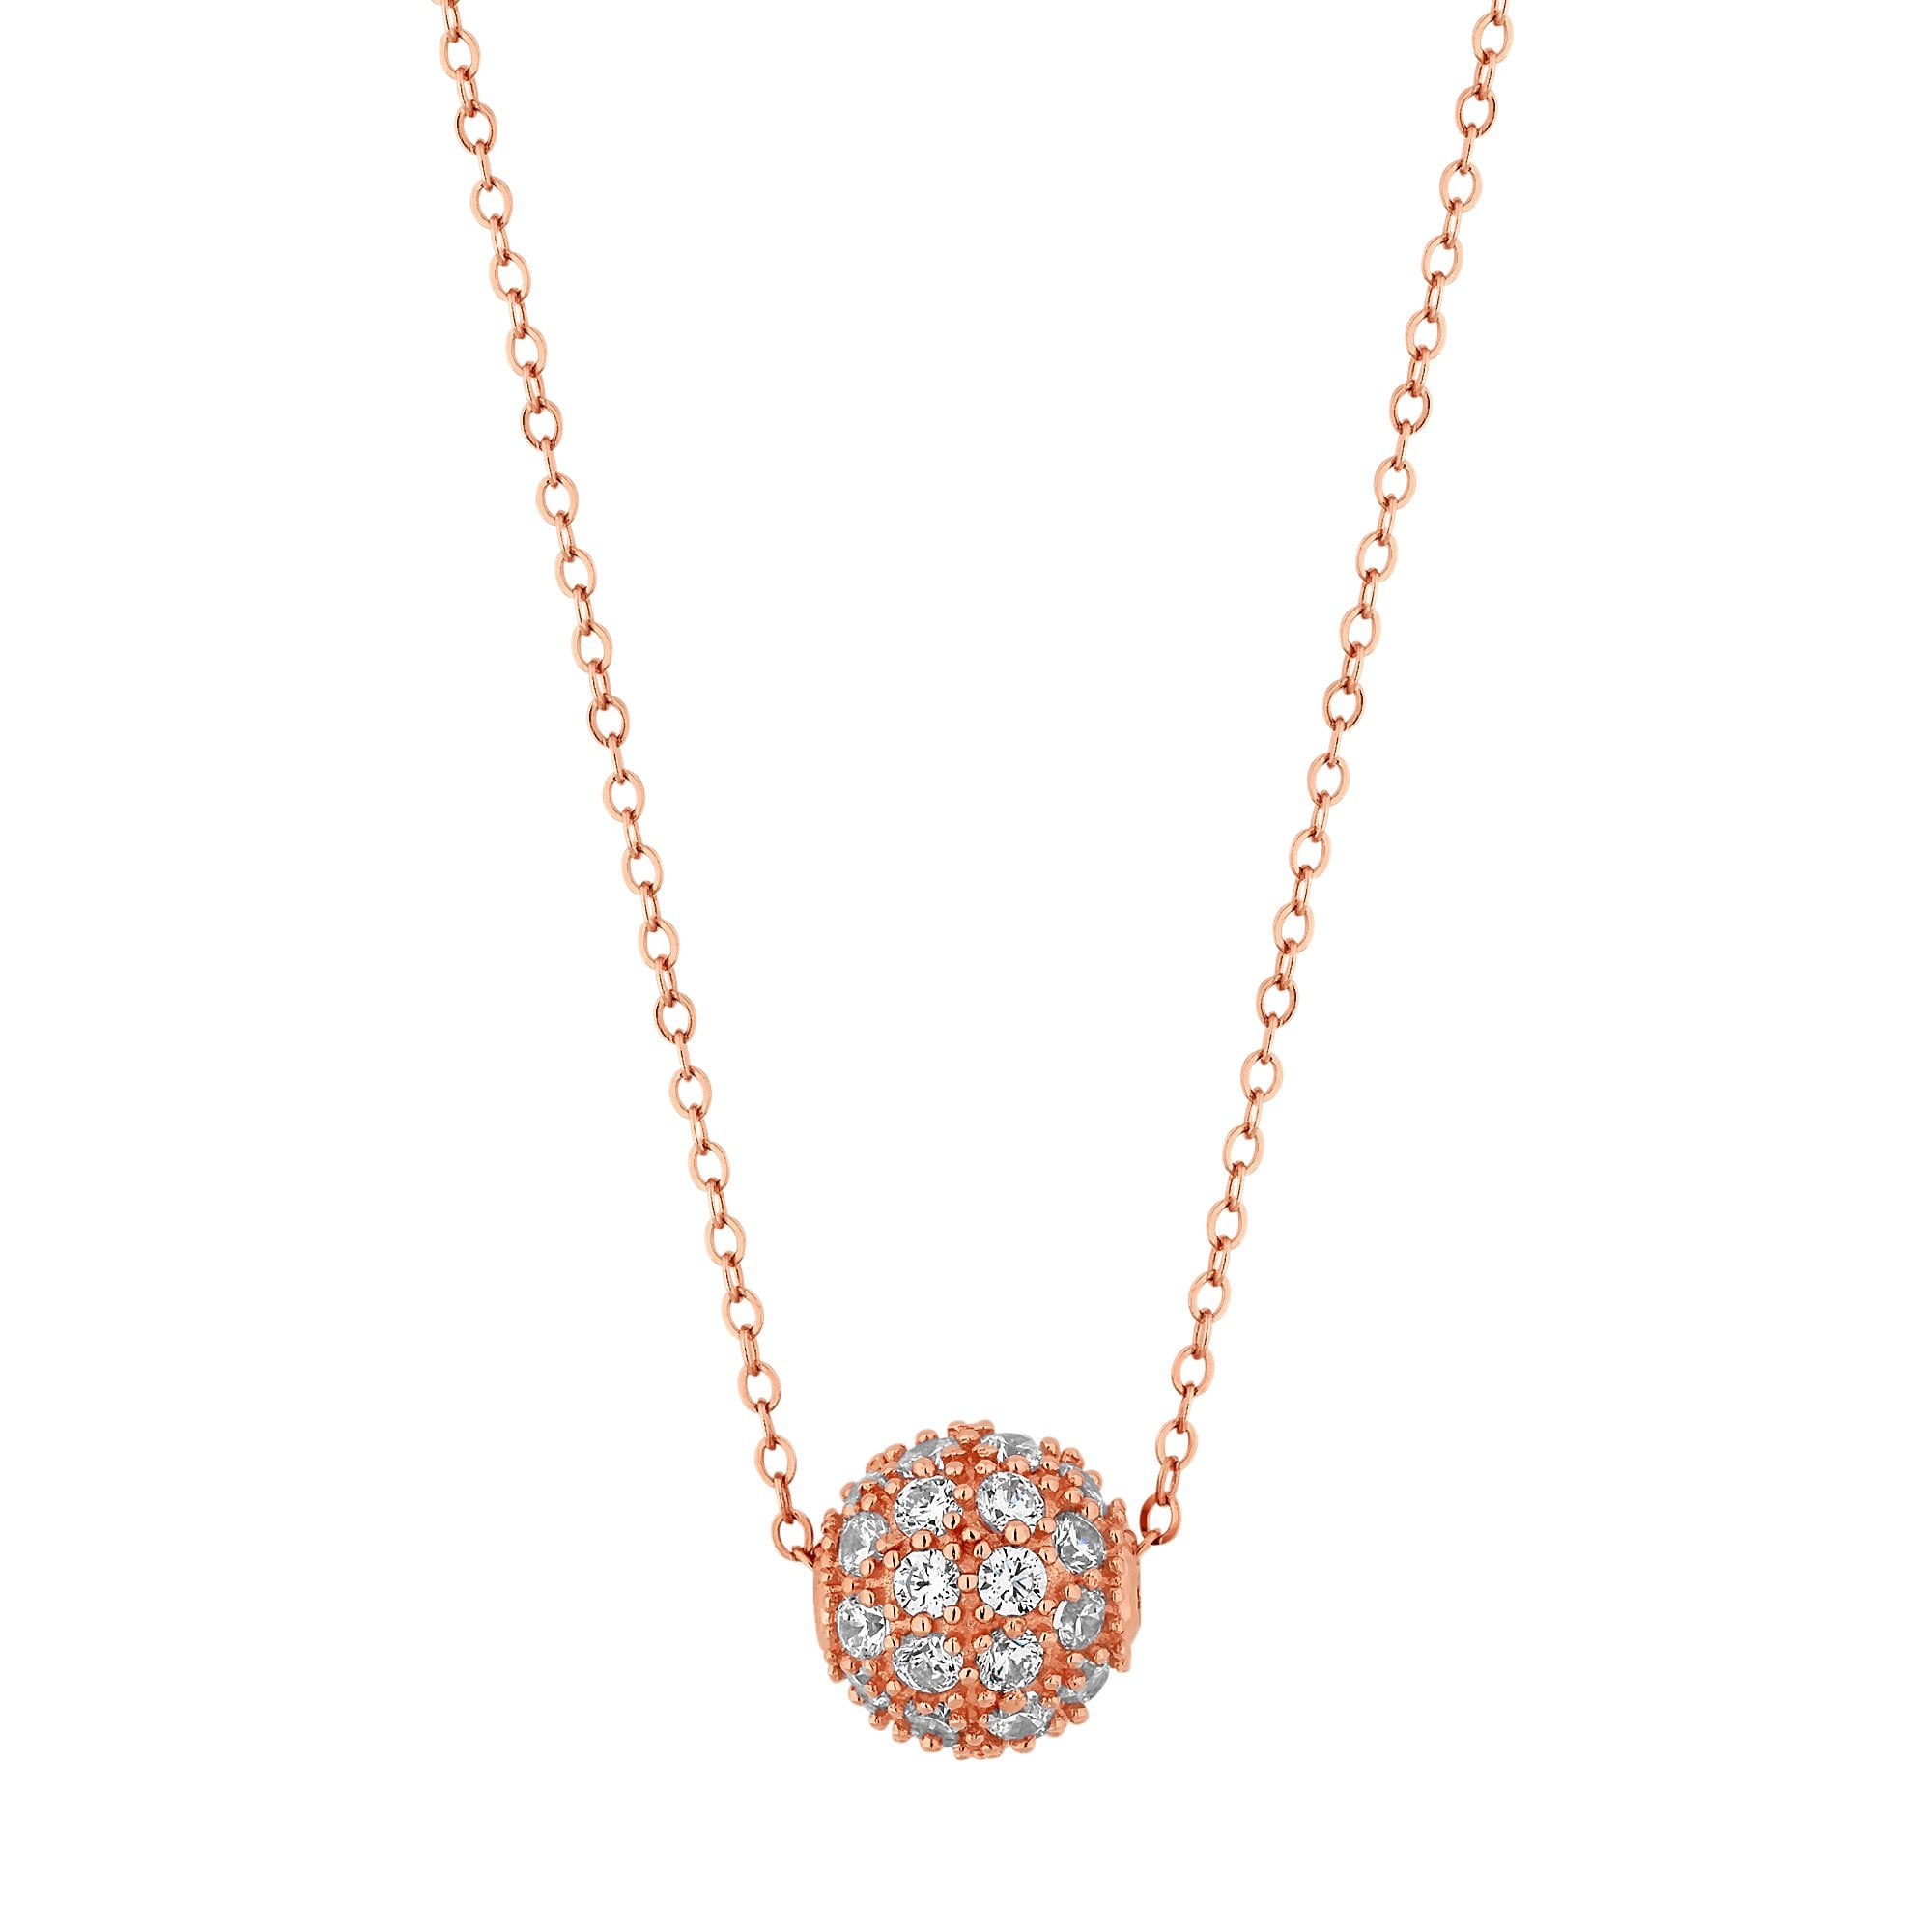 f7ec7306708c1 Simply Silver 14ct Rose Gold Plated Sterling Silver 925 Pave Ball Pendant  Necklace